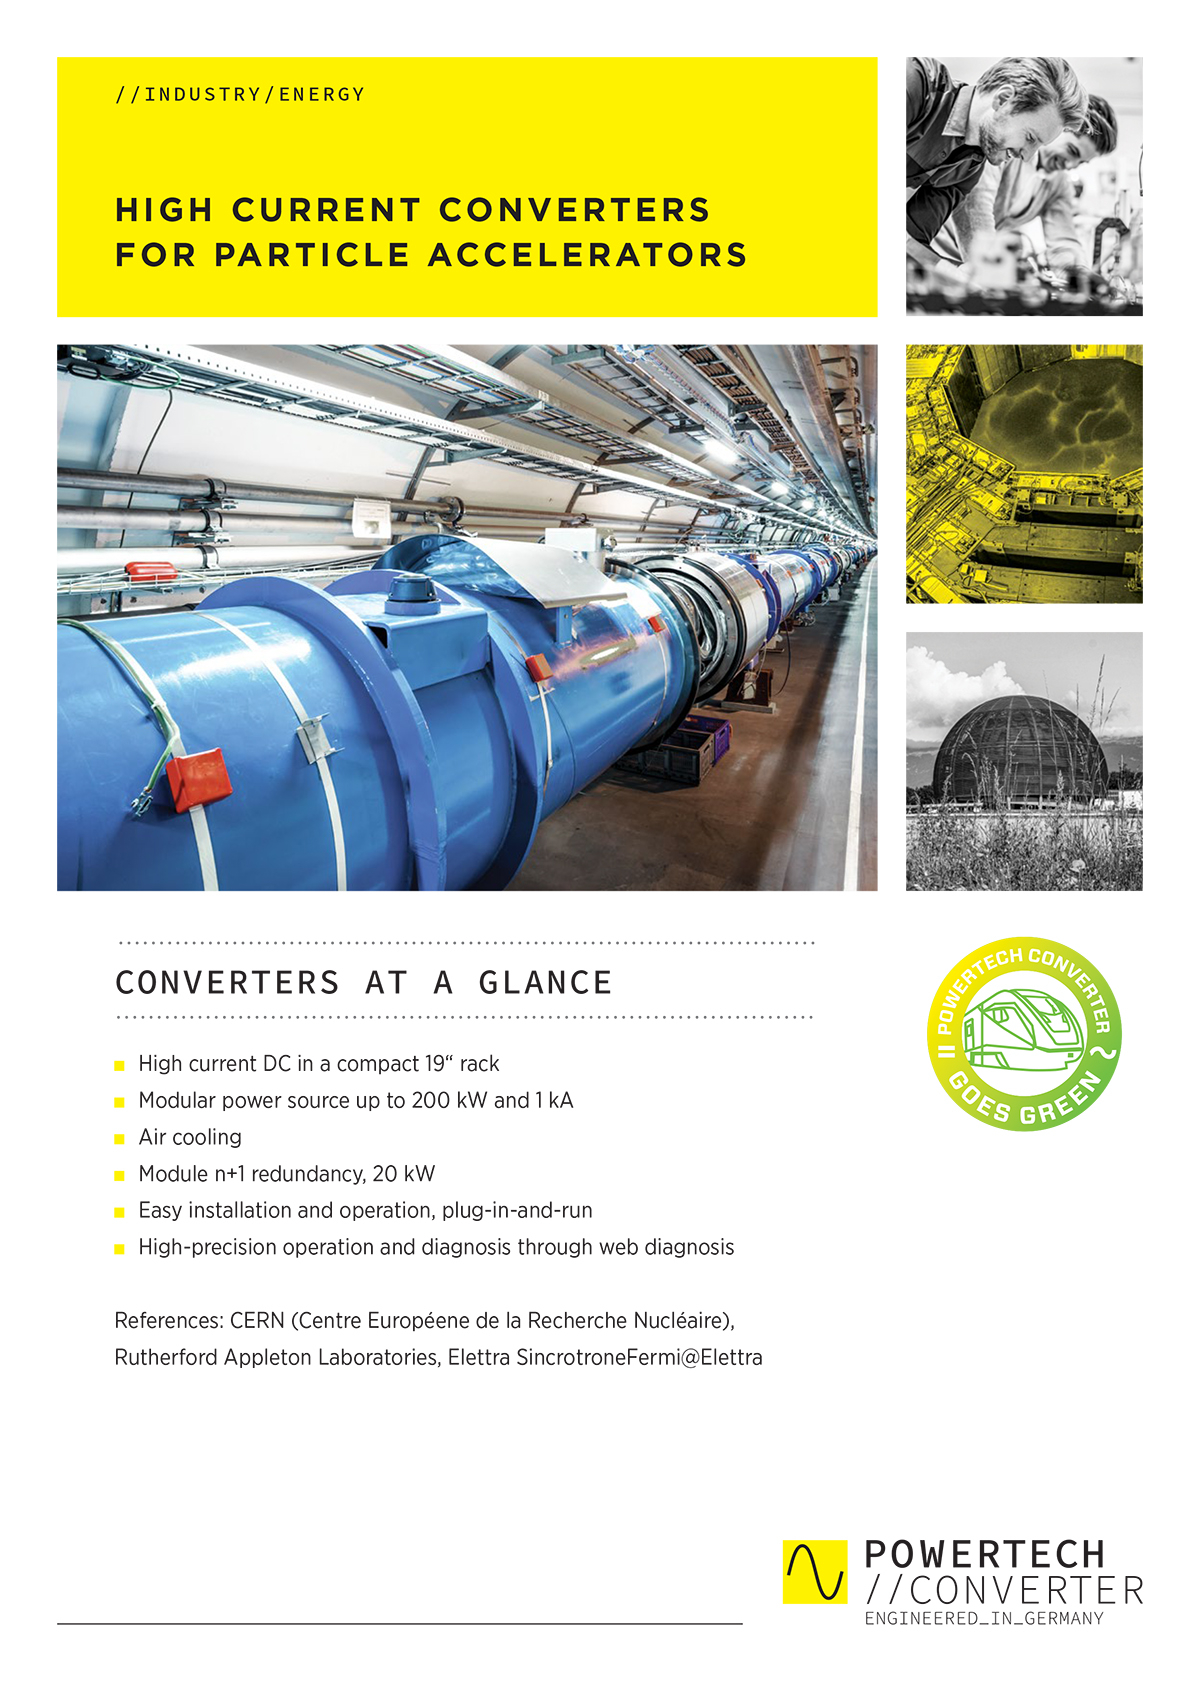 HIGH CURRENT CONVERTERS FOR PARTICLE ACCELERATORS